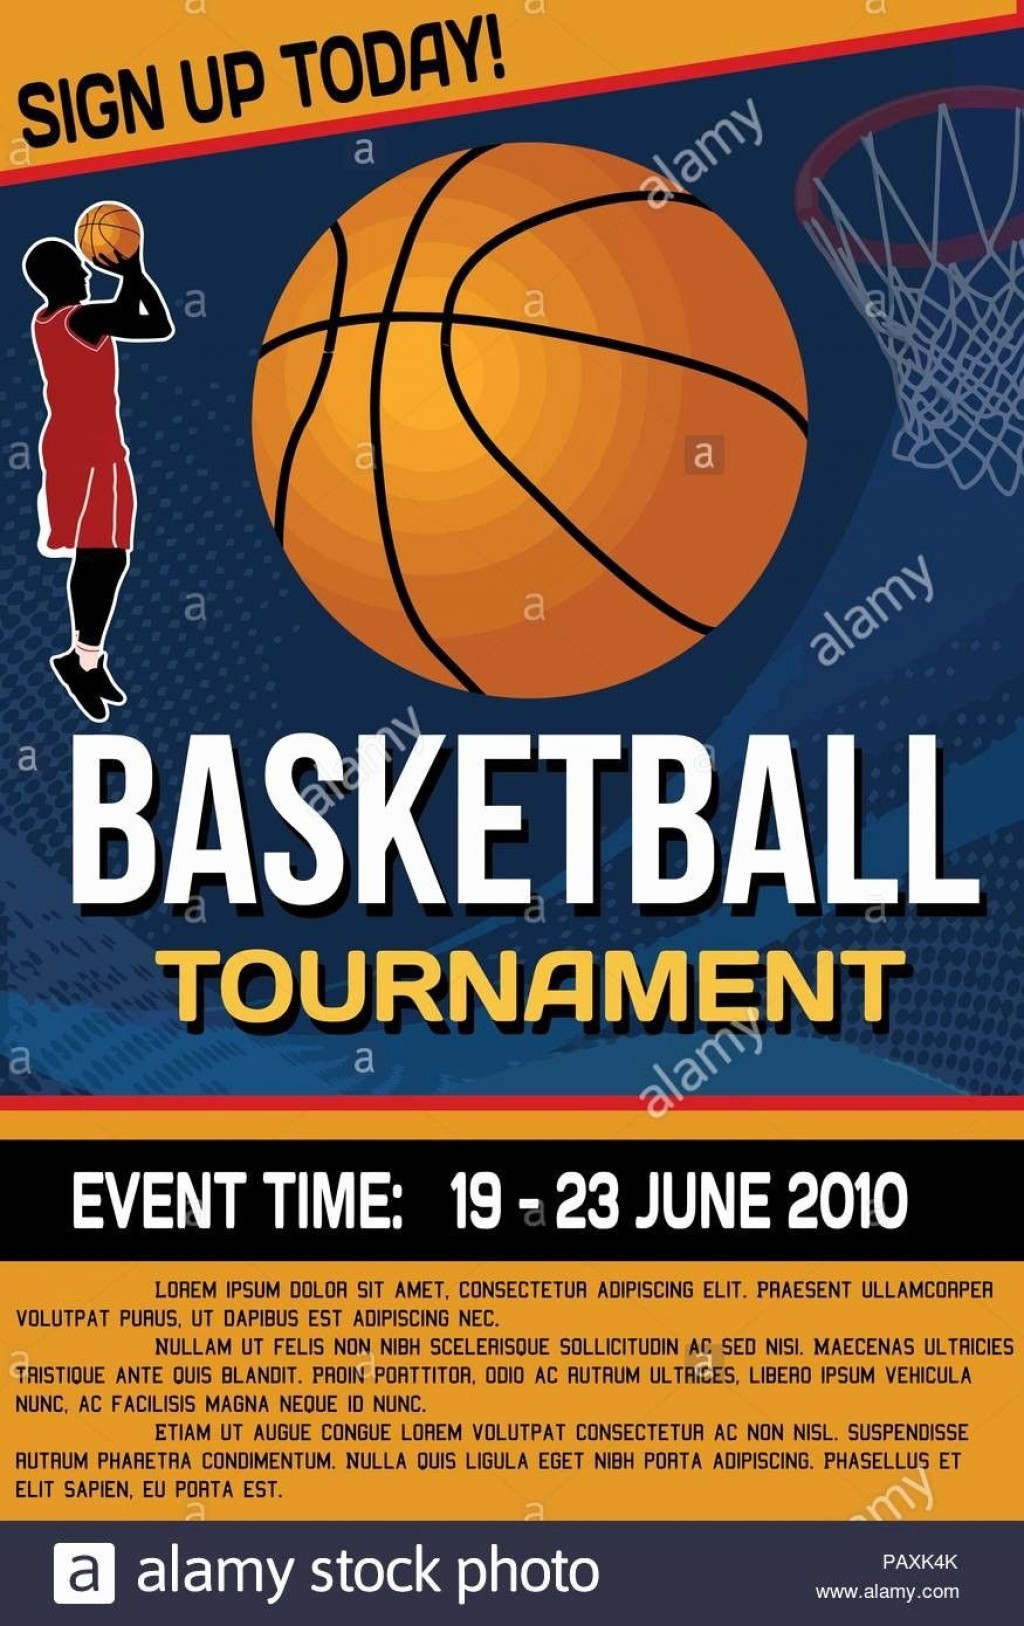 007 Fearsome Basketball Tournament Flyer Template Design  3 On FreeLarge